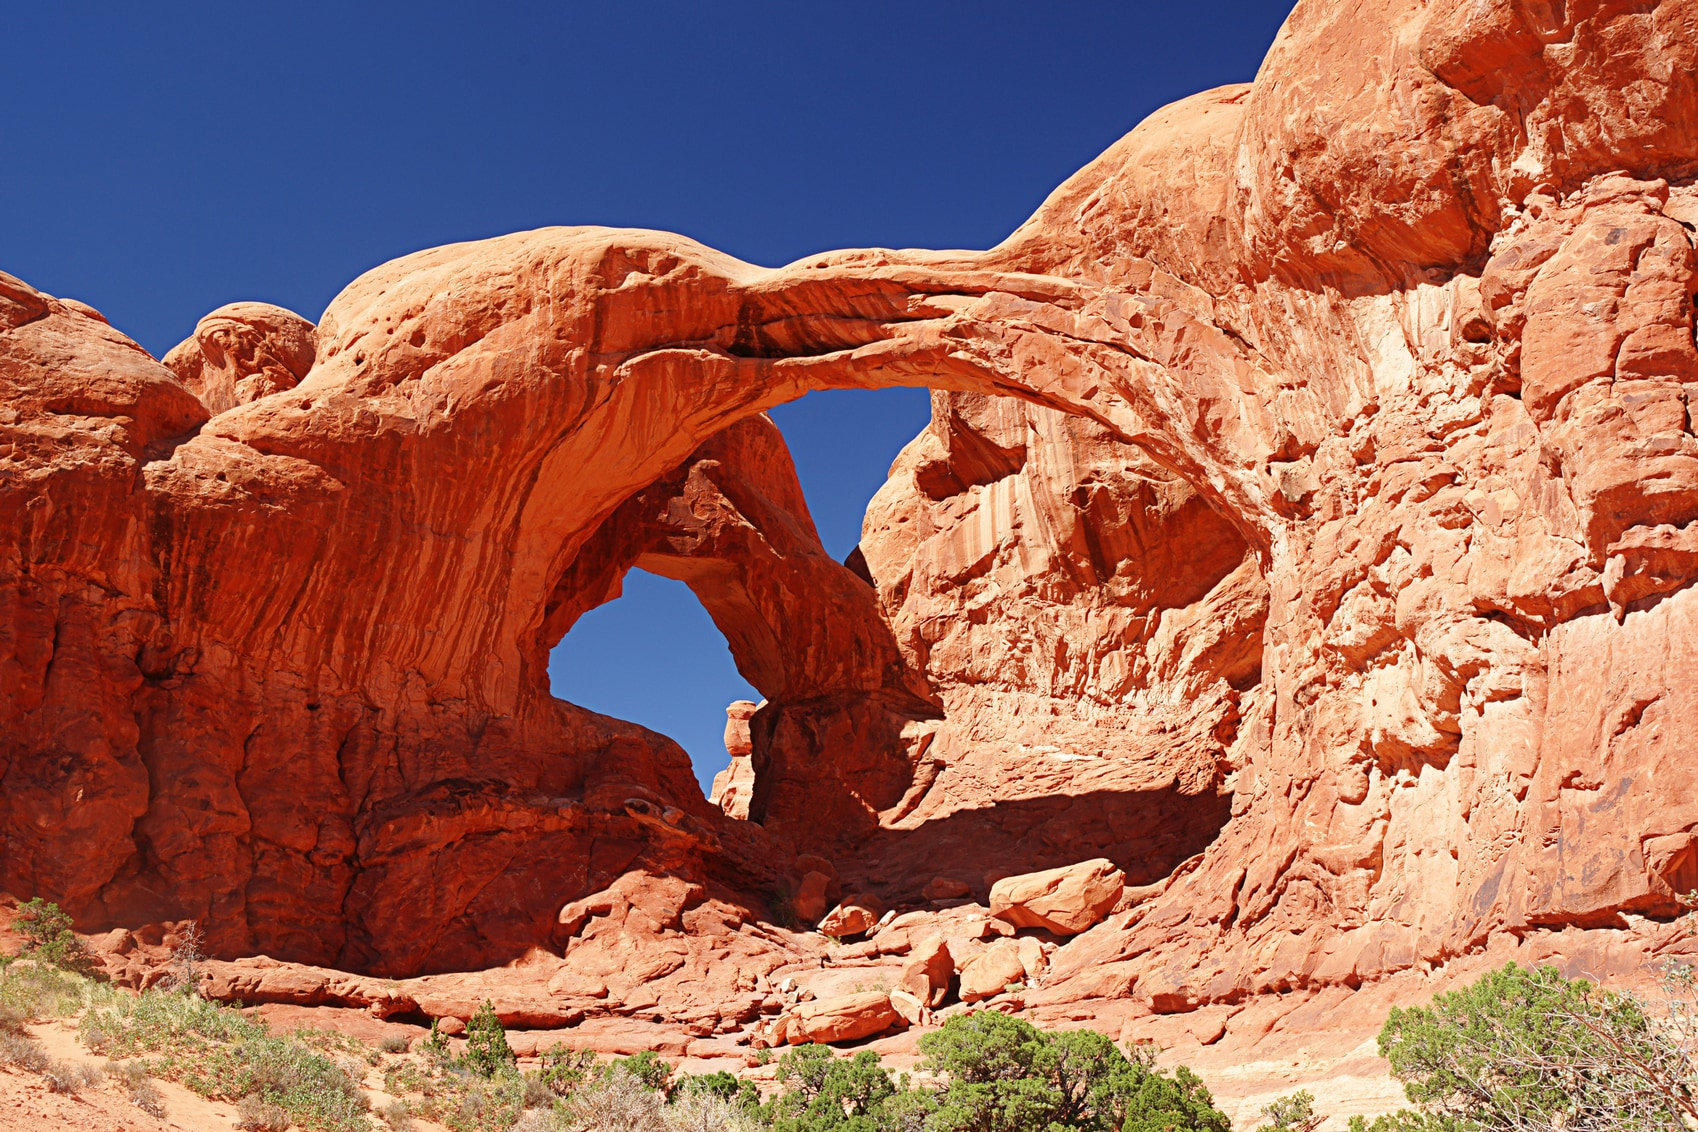 America's National Parks arches-National-park-www.istockphoto.comgbphotodouble-arch-arches-national-park-moab-utah-gm183359414-15105975-TheCrimsonMonkey